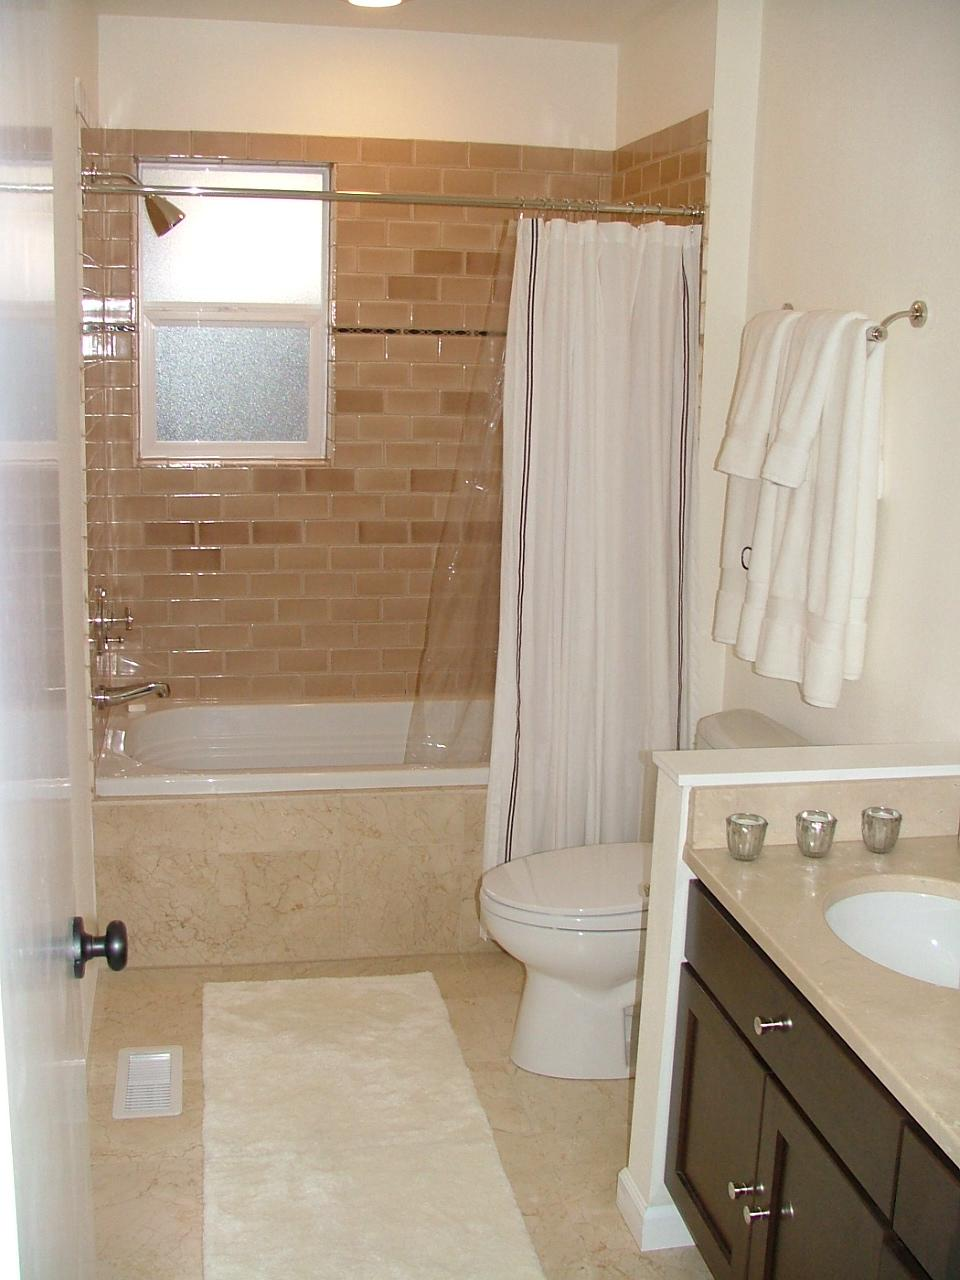 2 bathroom remodel guest bathroom remodeling picture for Bathroom improvements